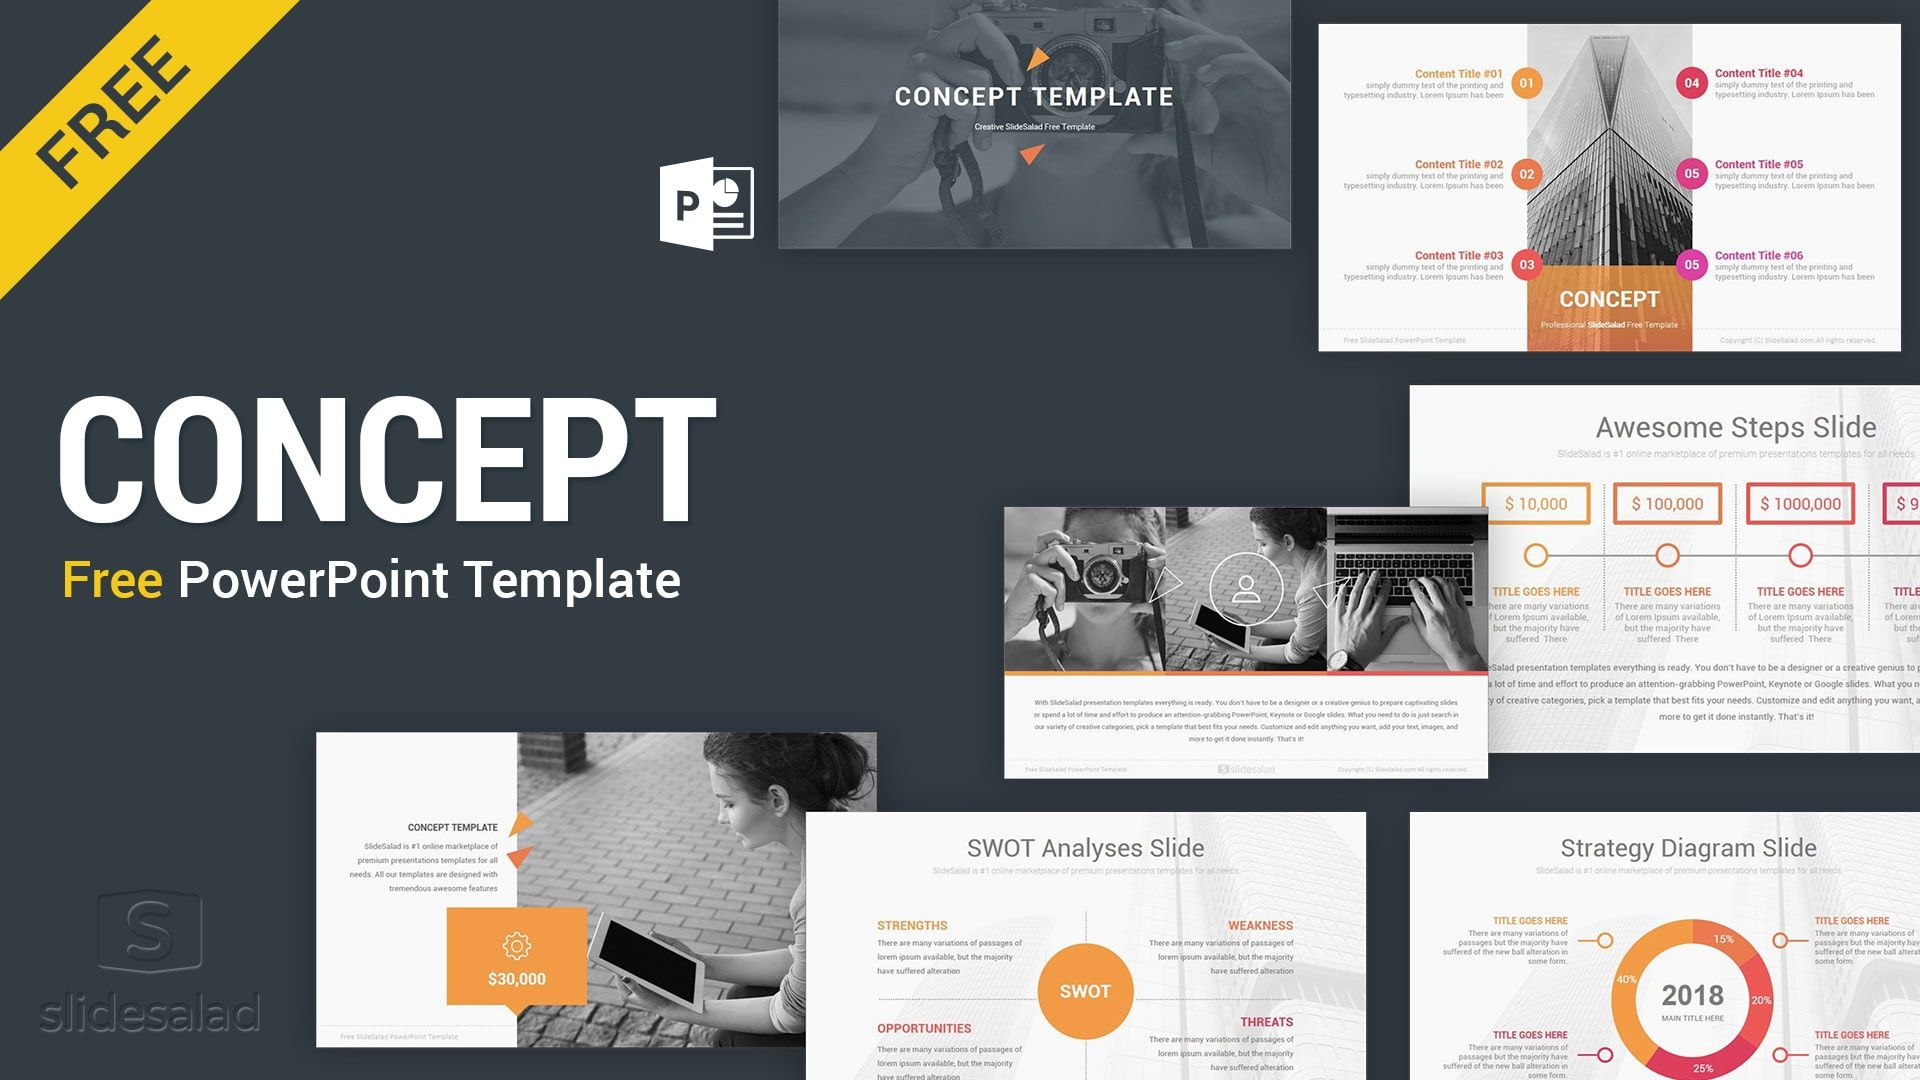 004 Sensational Free Download Ppt Template For Technical Presentation Inspiration  Simple Project SampleFull